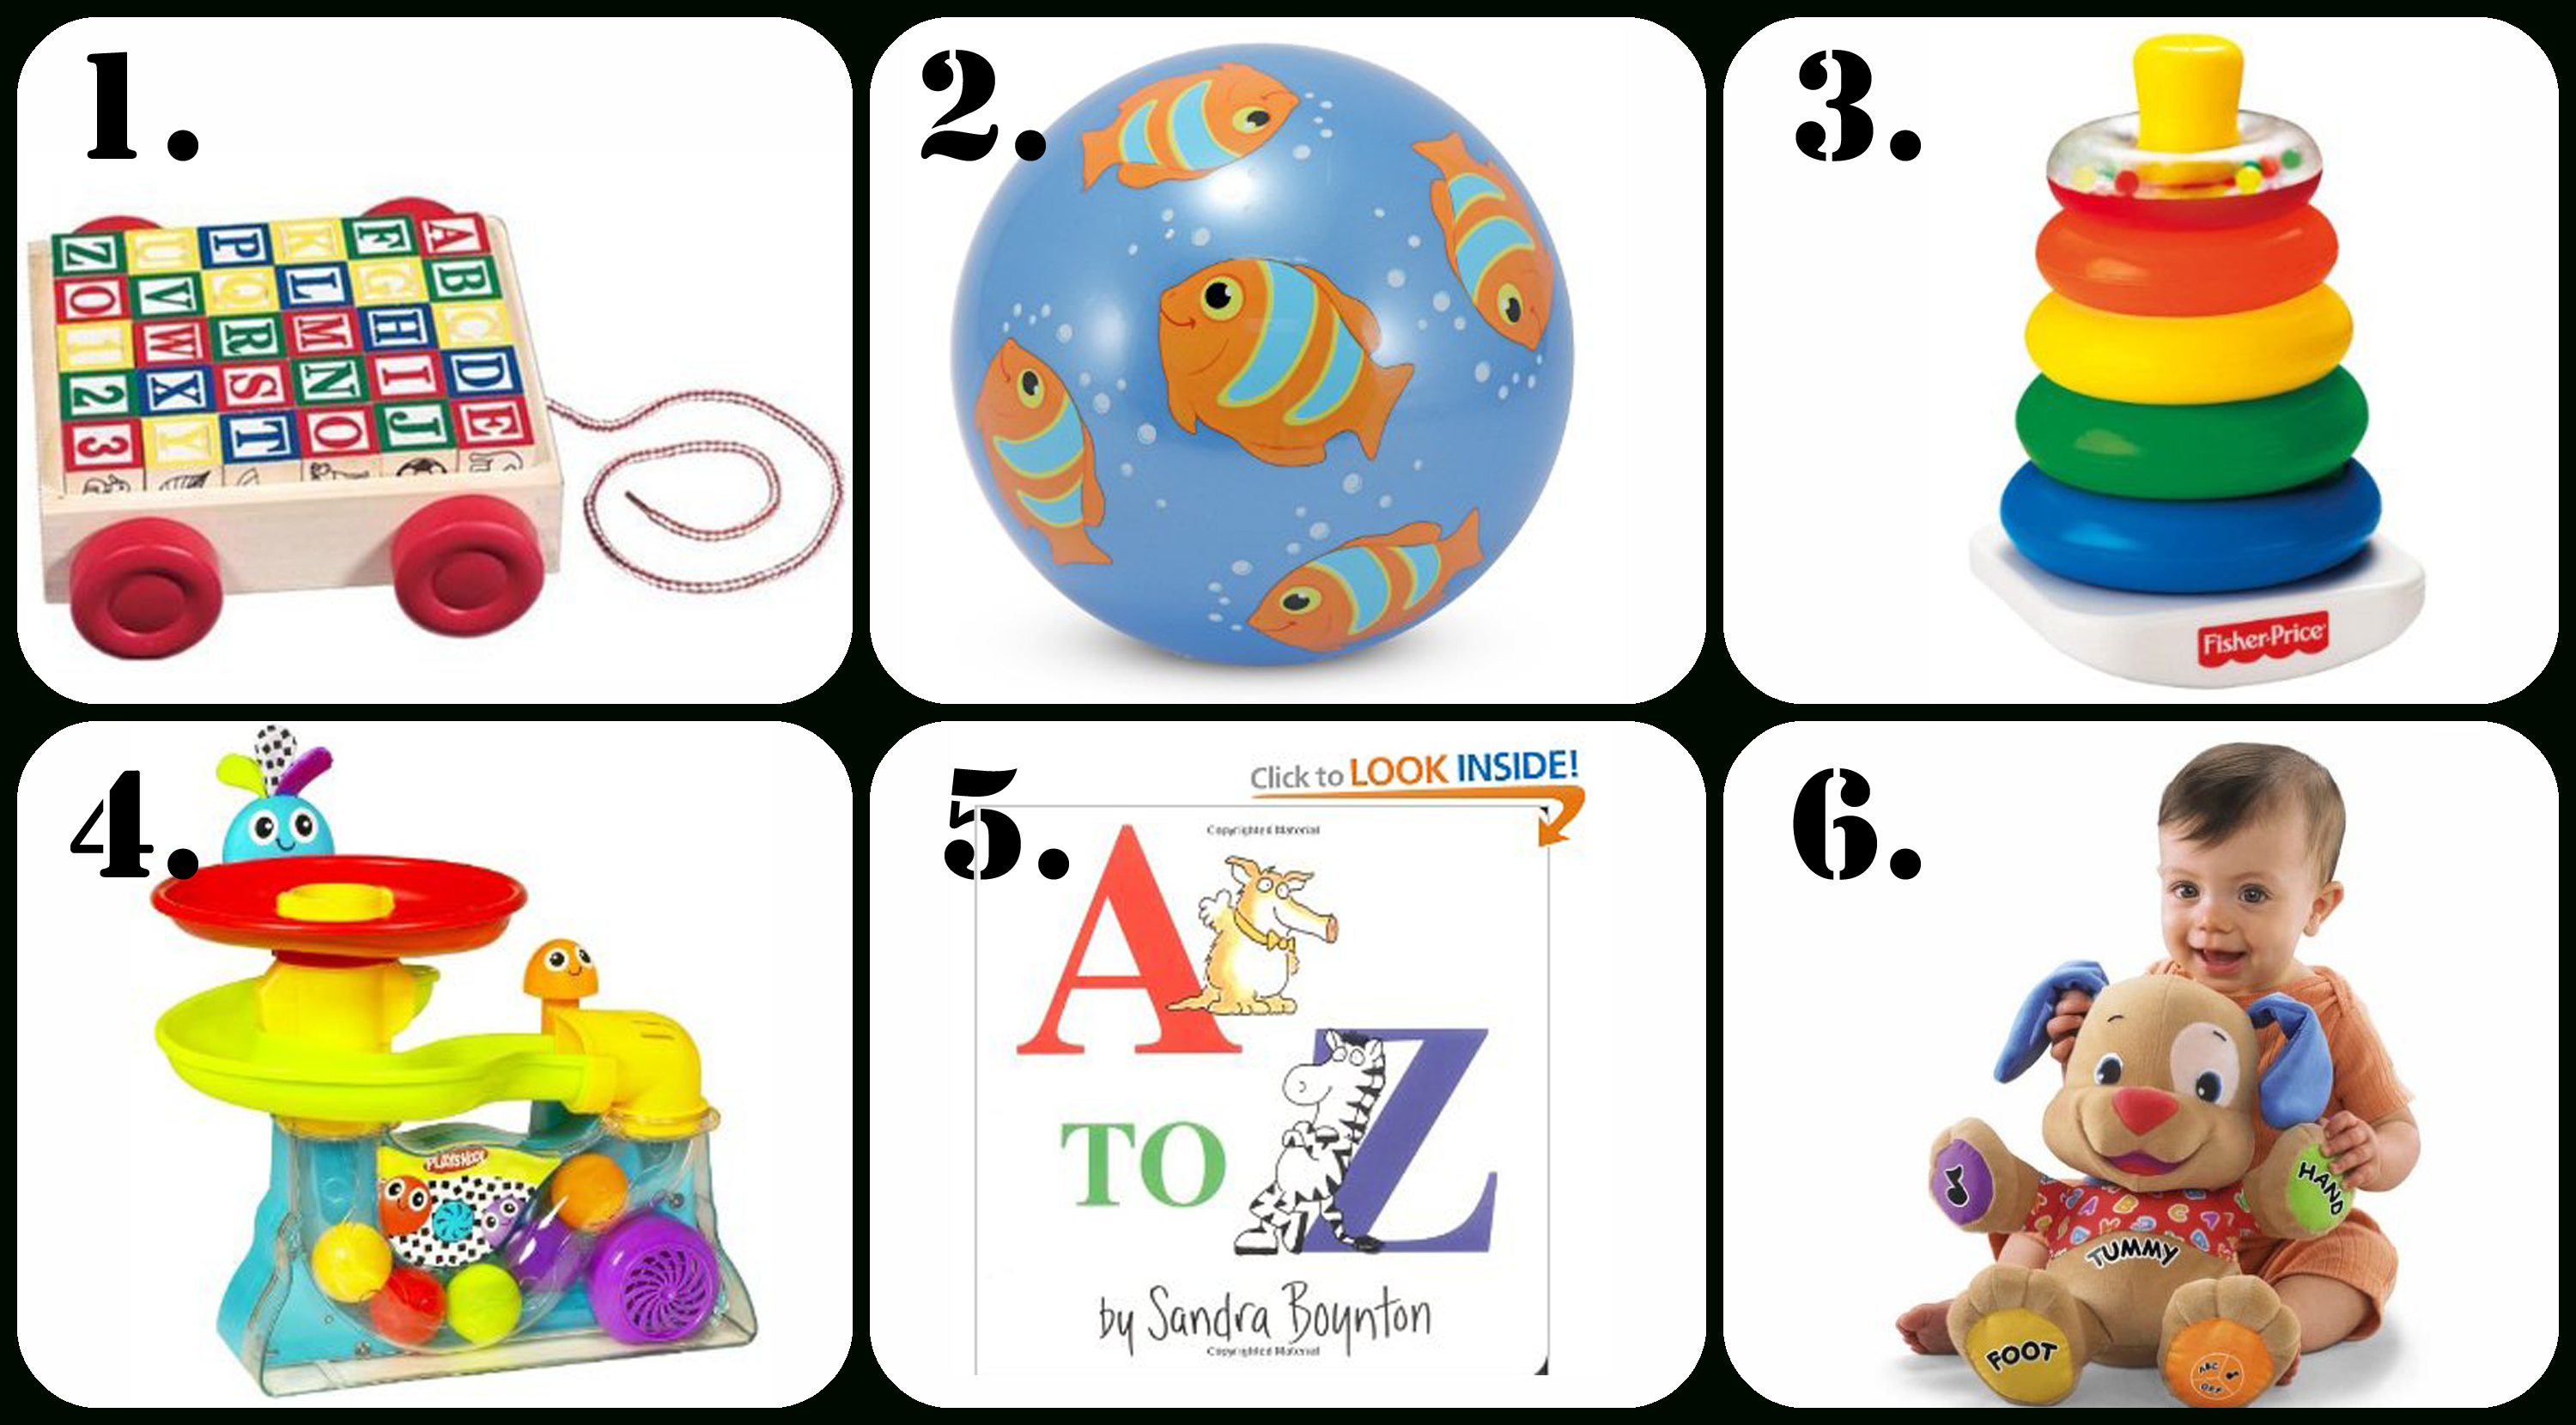 10 Lovable Gift Ideas For A 1 Year Old Girl best gifts for a 1 year old girl e280a2 the pinning mama 1 2020